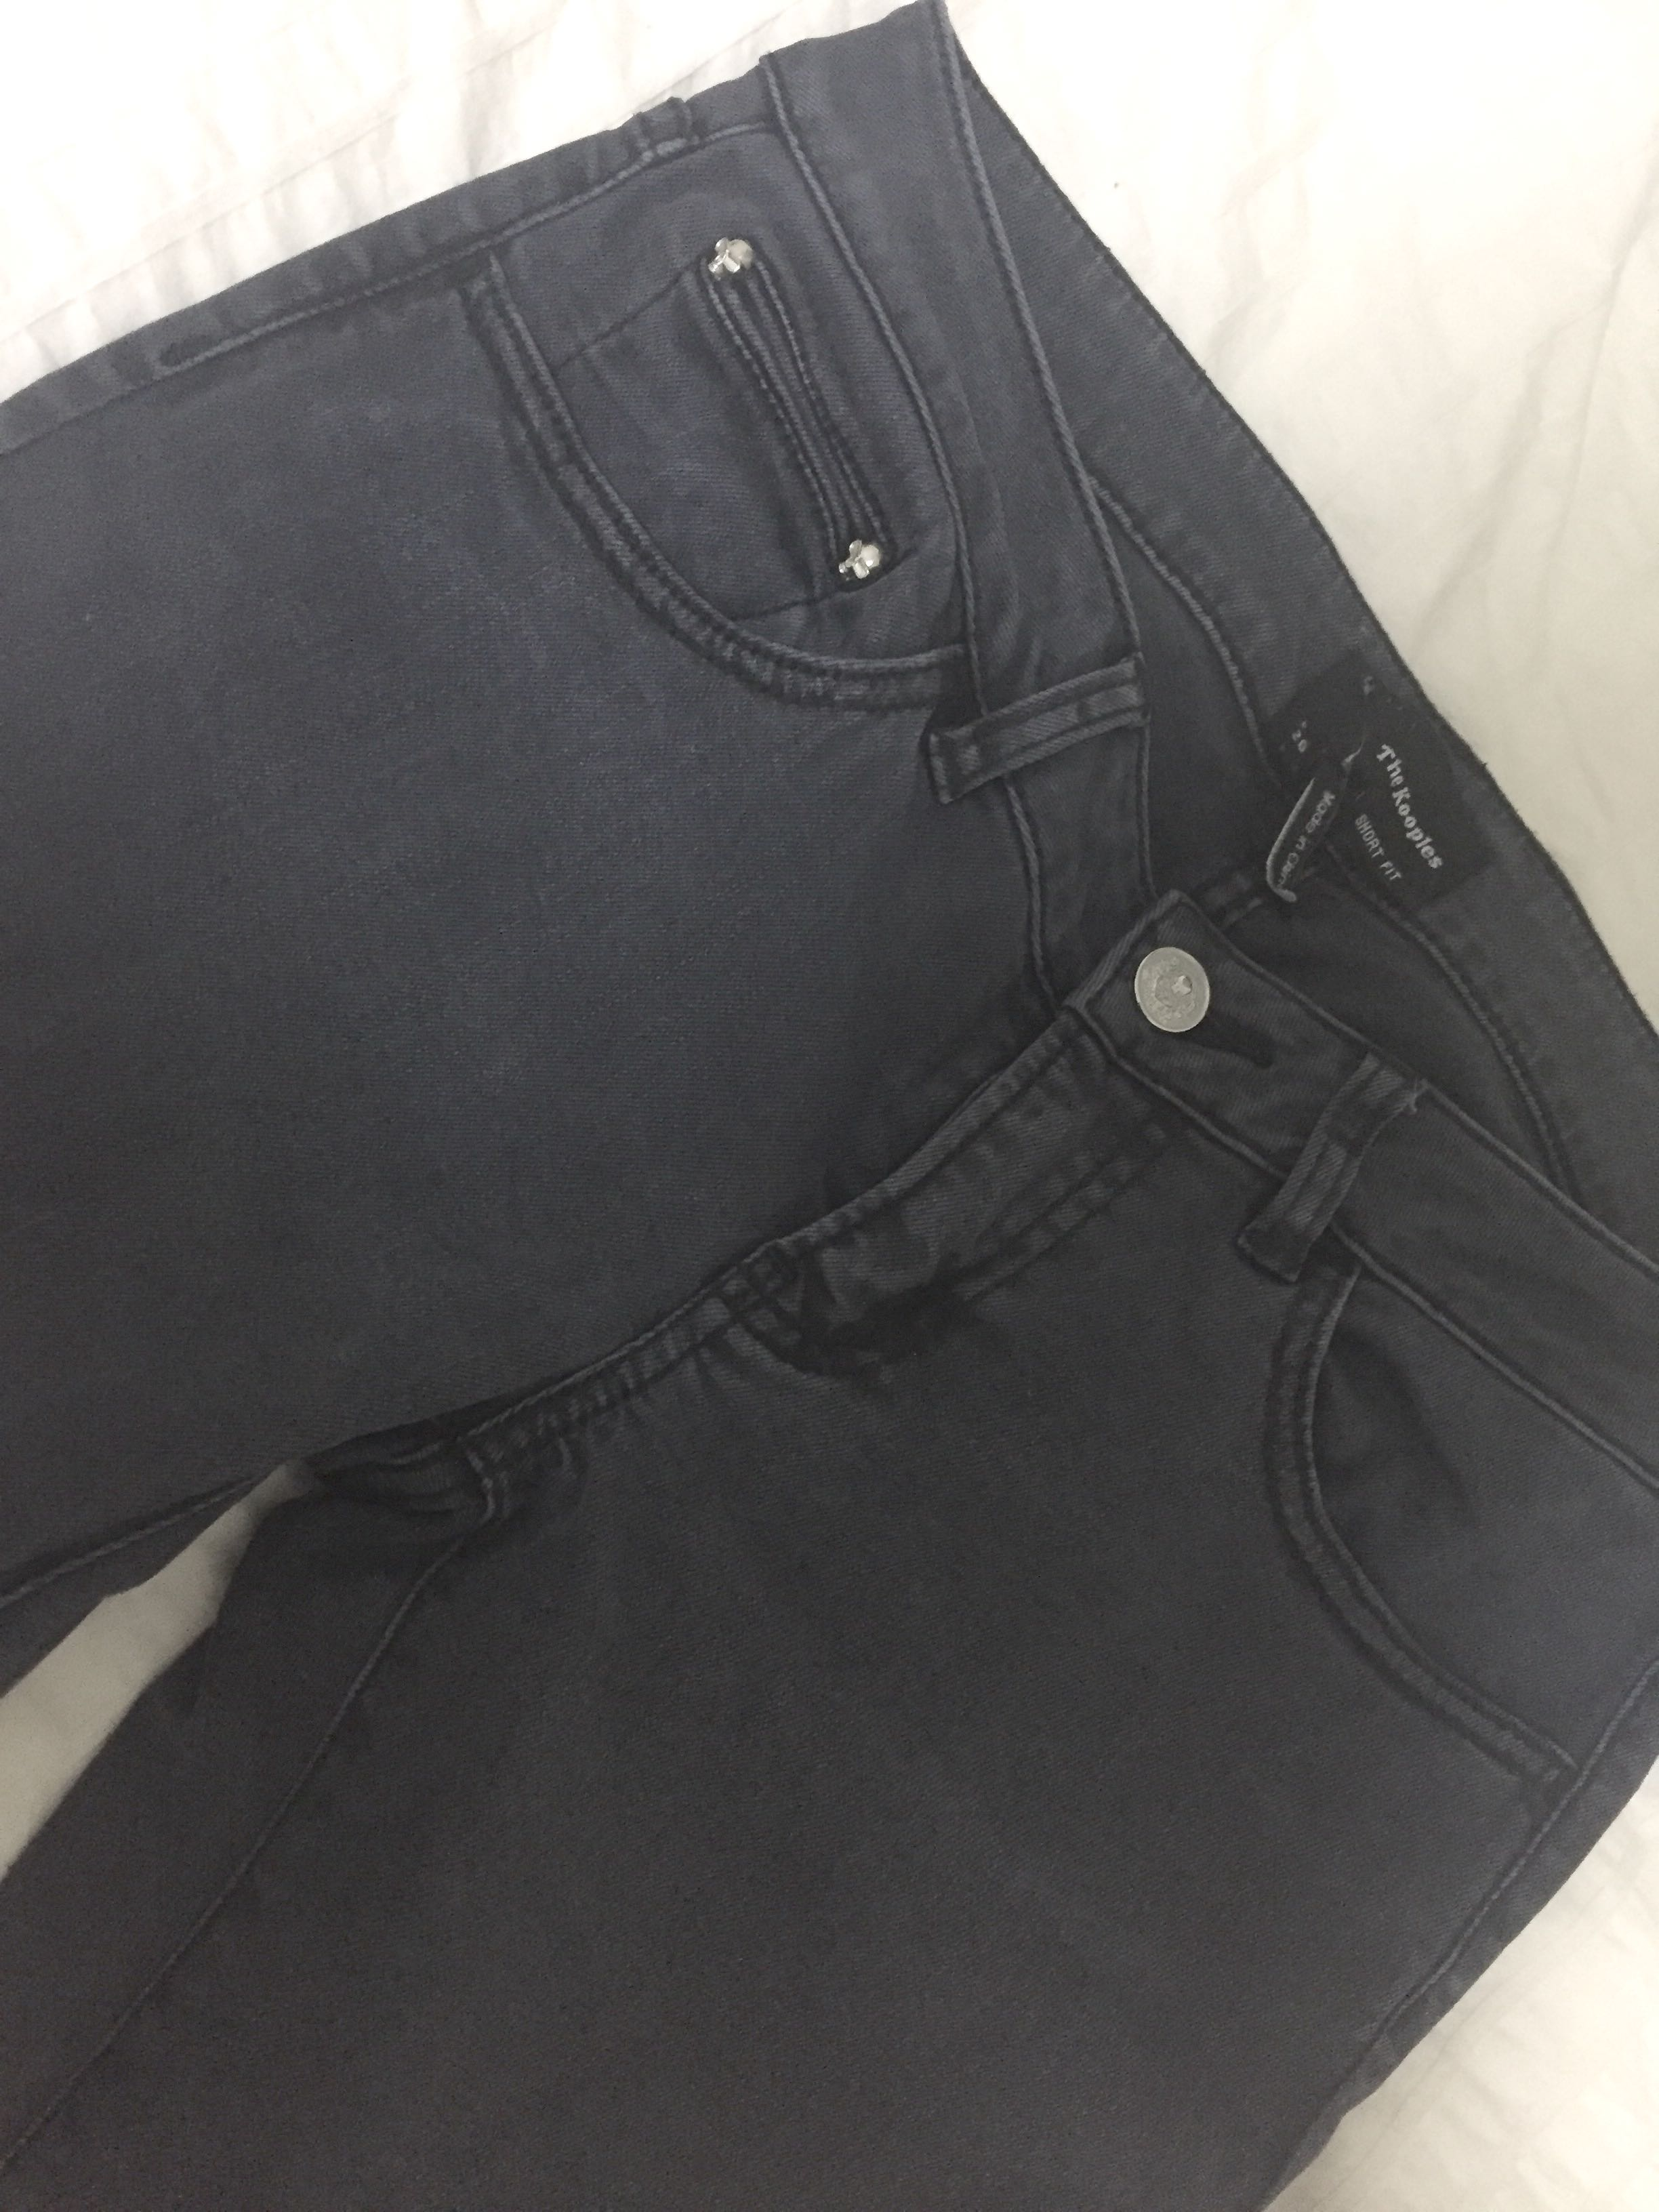 b32db3bf33 The Kooples short fit black jeans size 26, Women's Fashion, Clothes ...